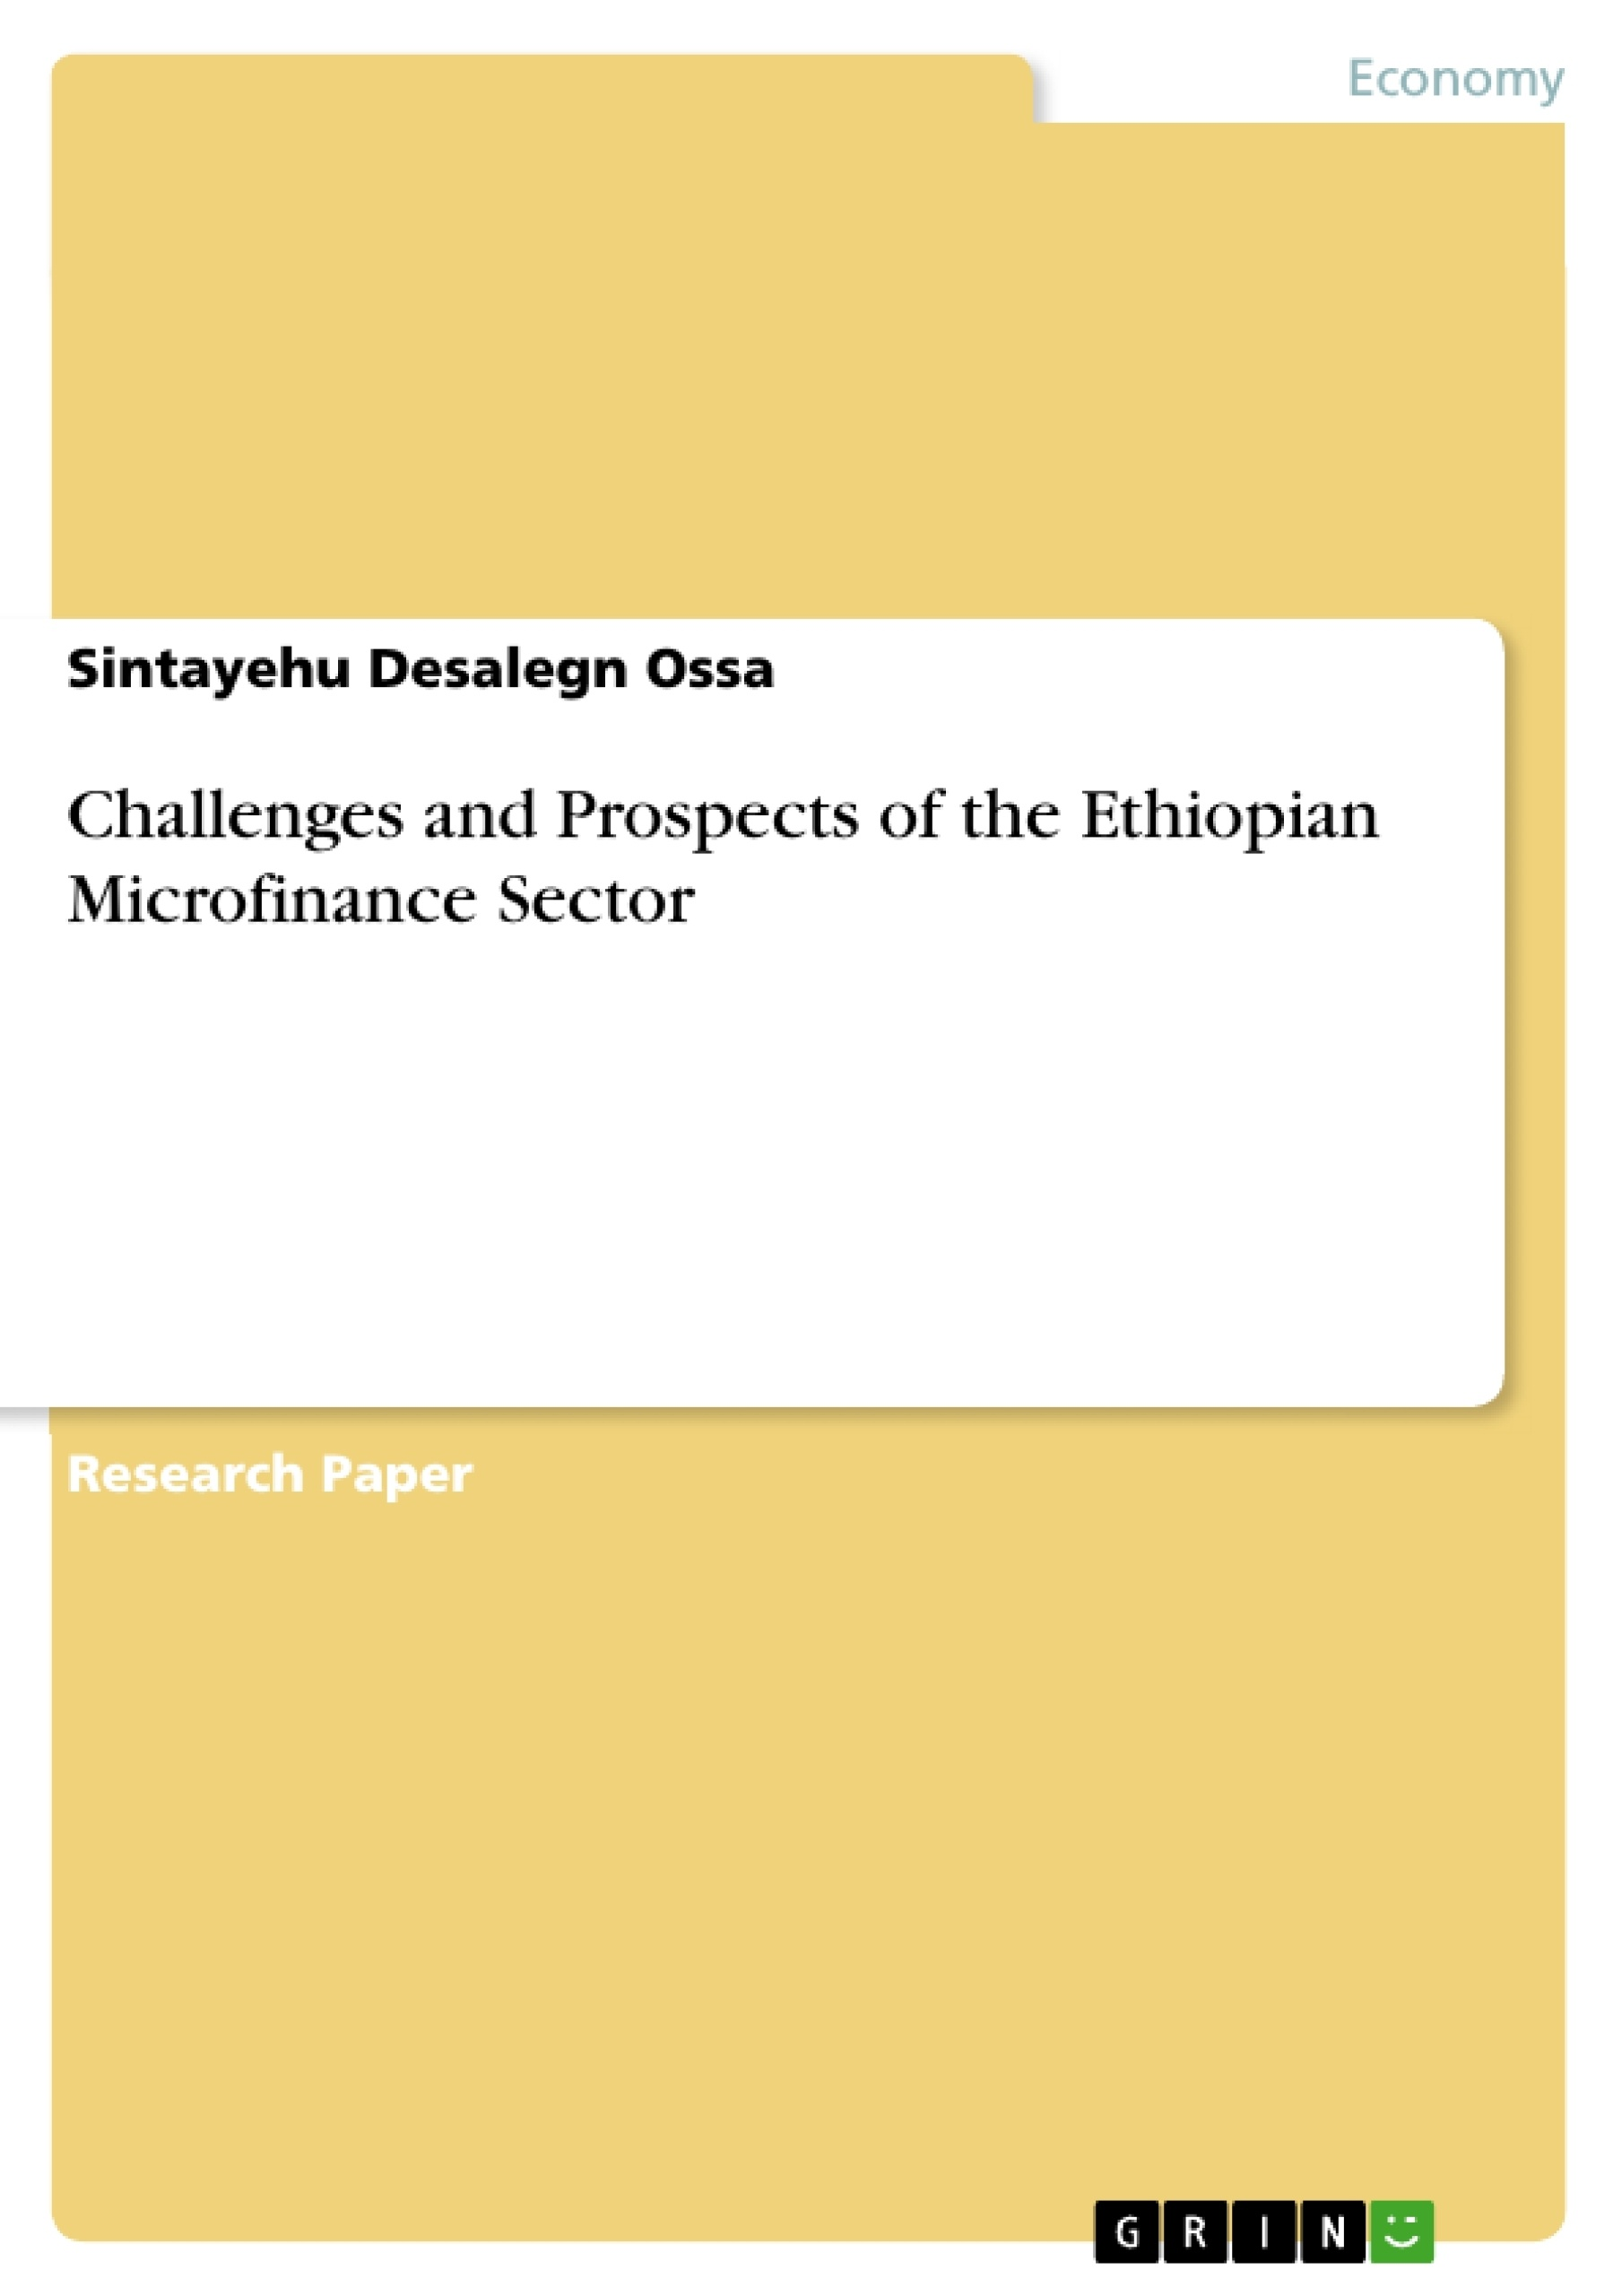 Title: Challenges and Prospects of the Ethiopian Microfinance Sector